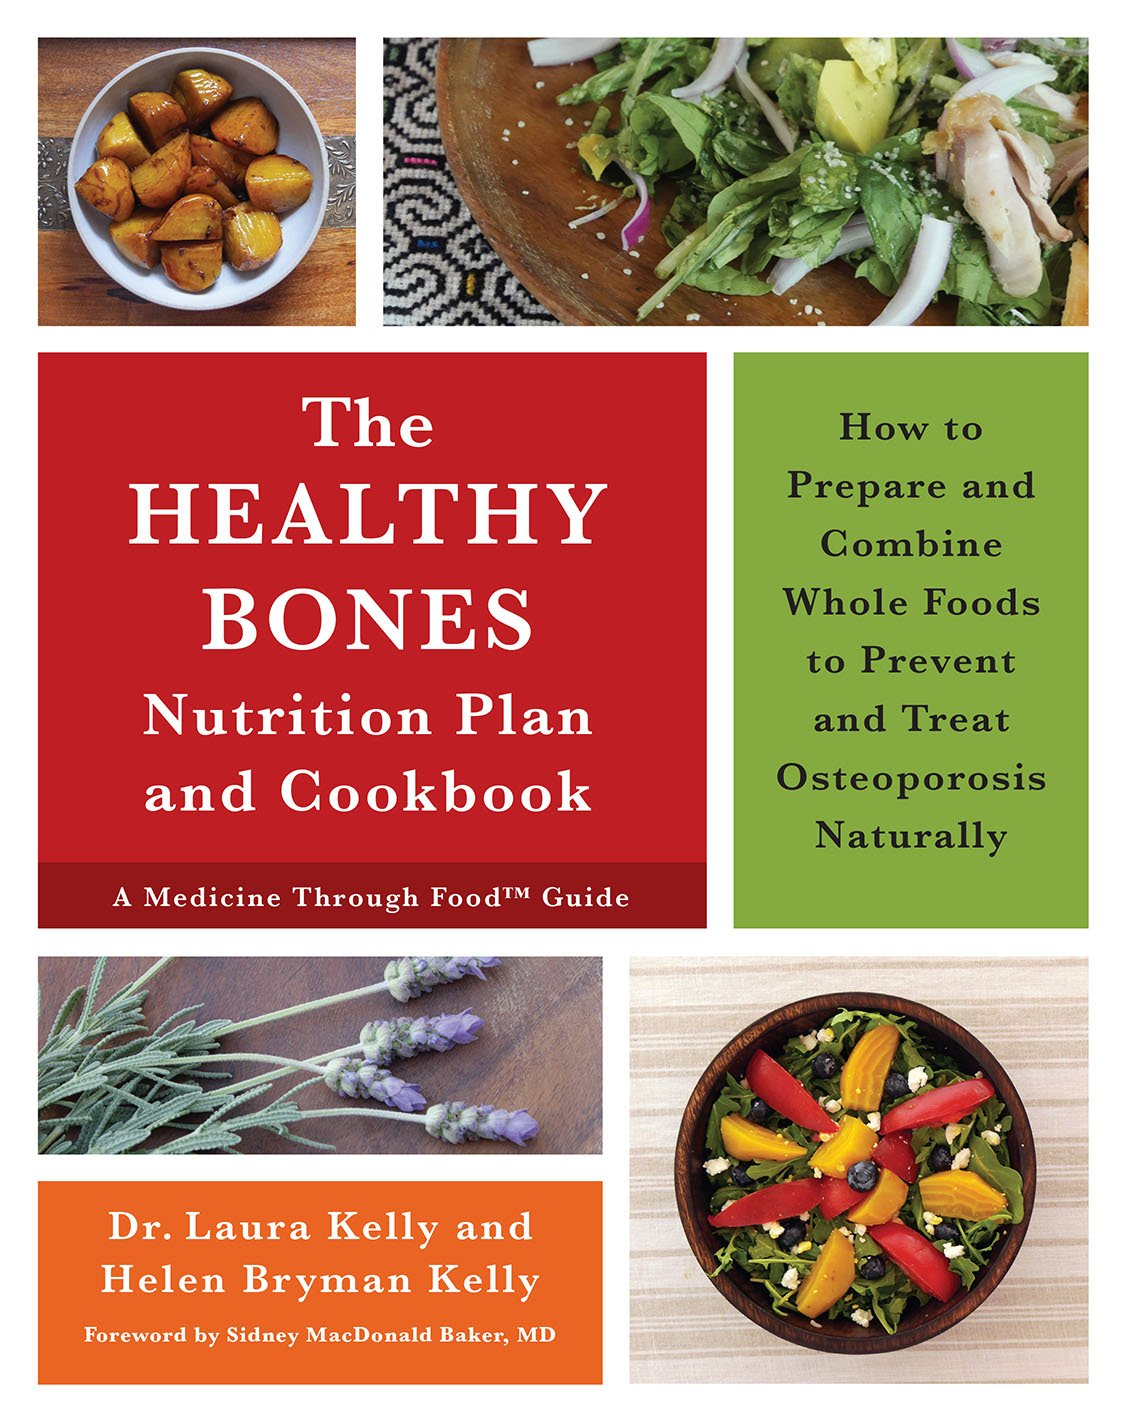 The Healthy Bones Nutrition Plan and Cookbook: How to Prepare and Combine Whole Foods to Prevent and Treat Osteoporosis Naturally Paperback – July 21, 2016 Dr. Laura Kelly Helen Bryman Kelly Dr. Sidney MacDonald Baker Chelsea Green Publishing